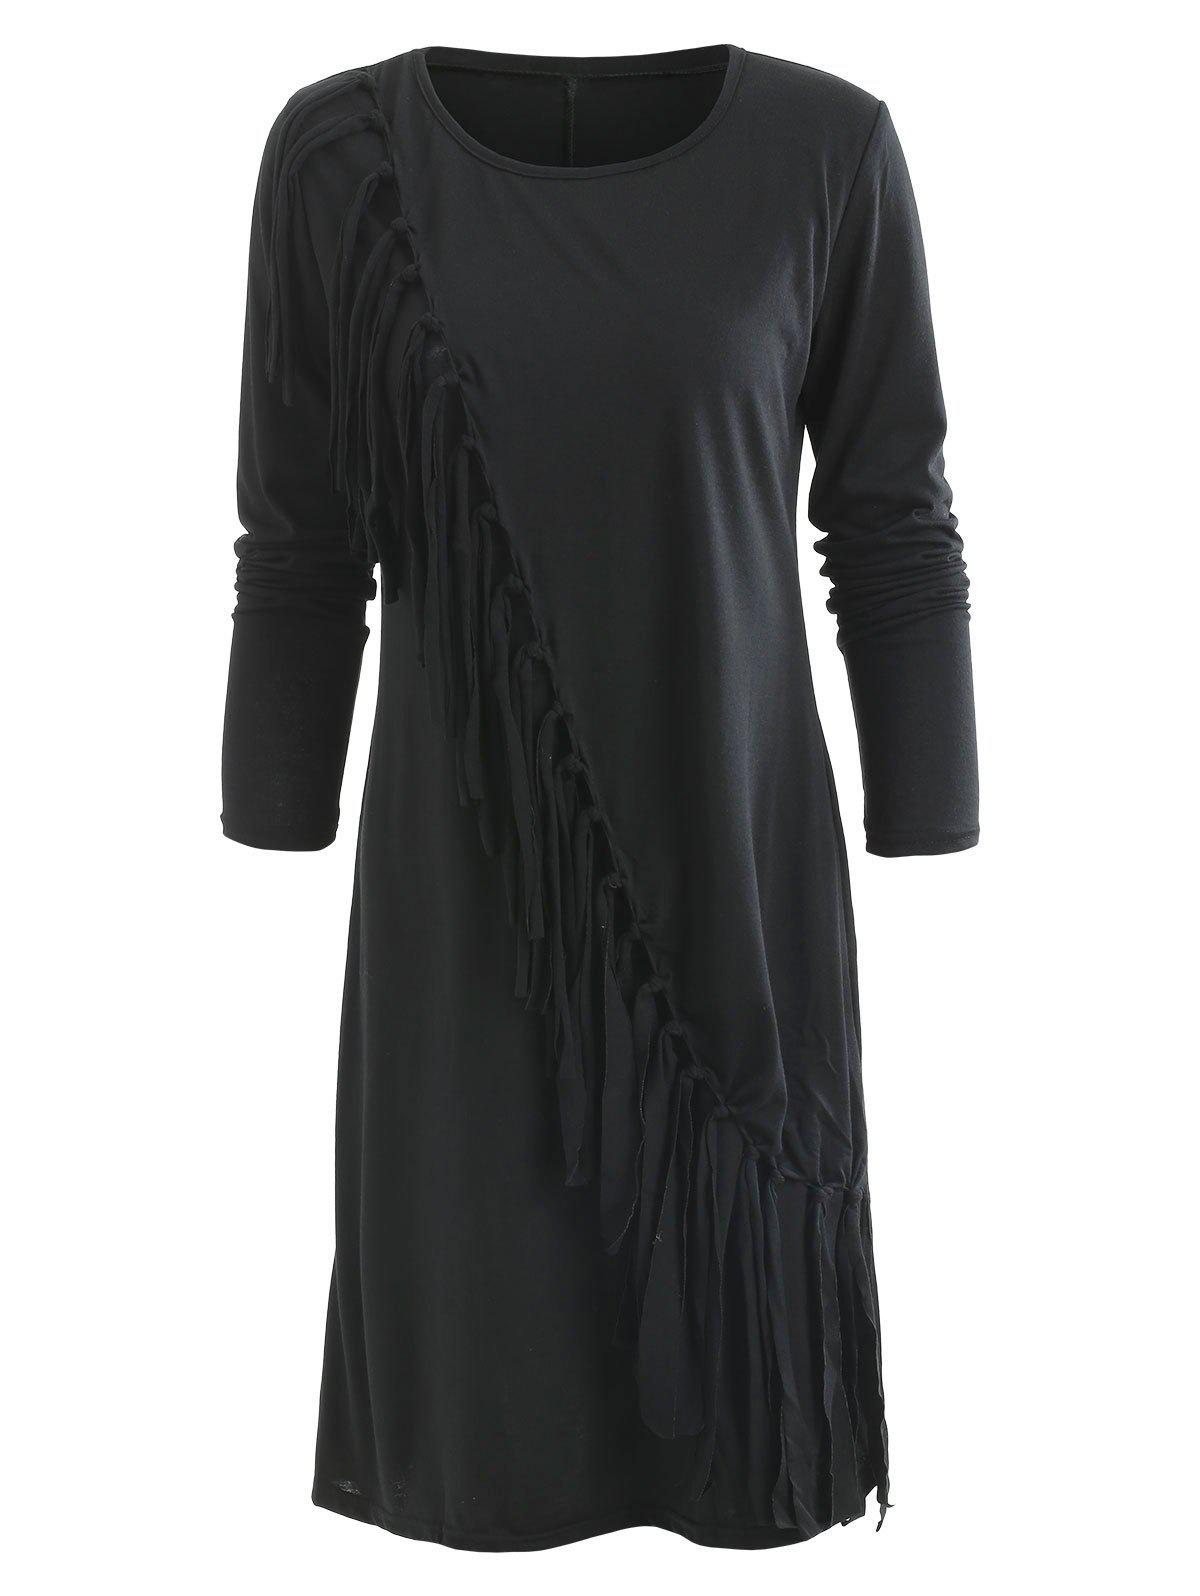 Fringe Asymmetrical Hem Long Sleeve Dress - BLACK S